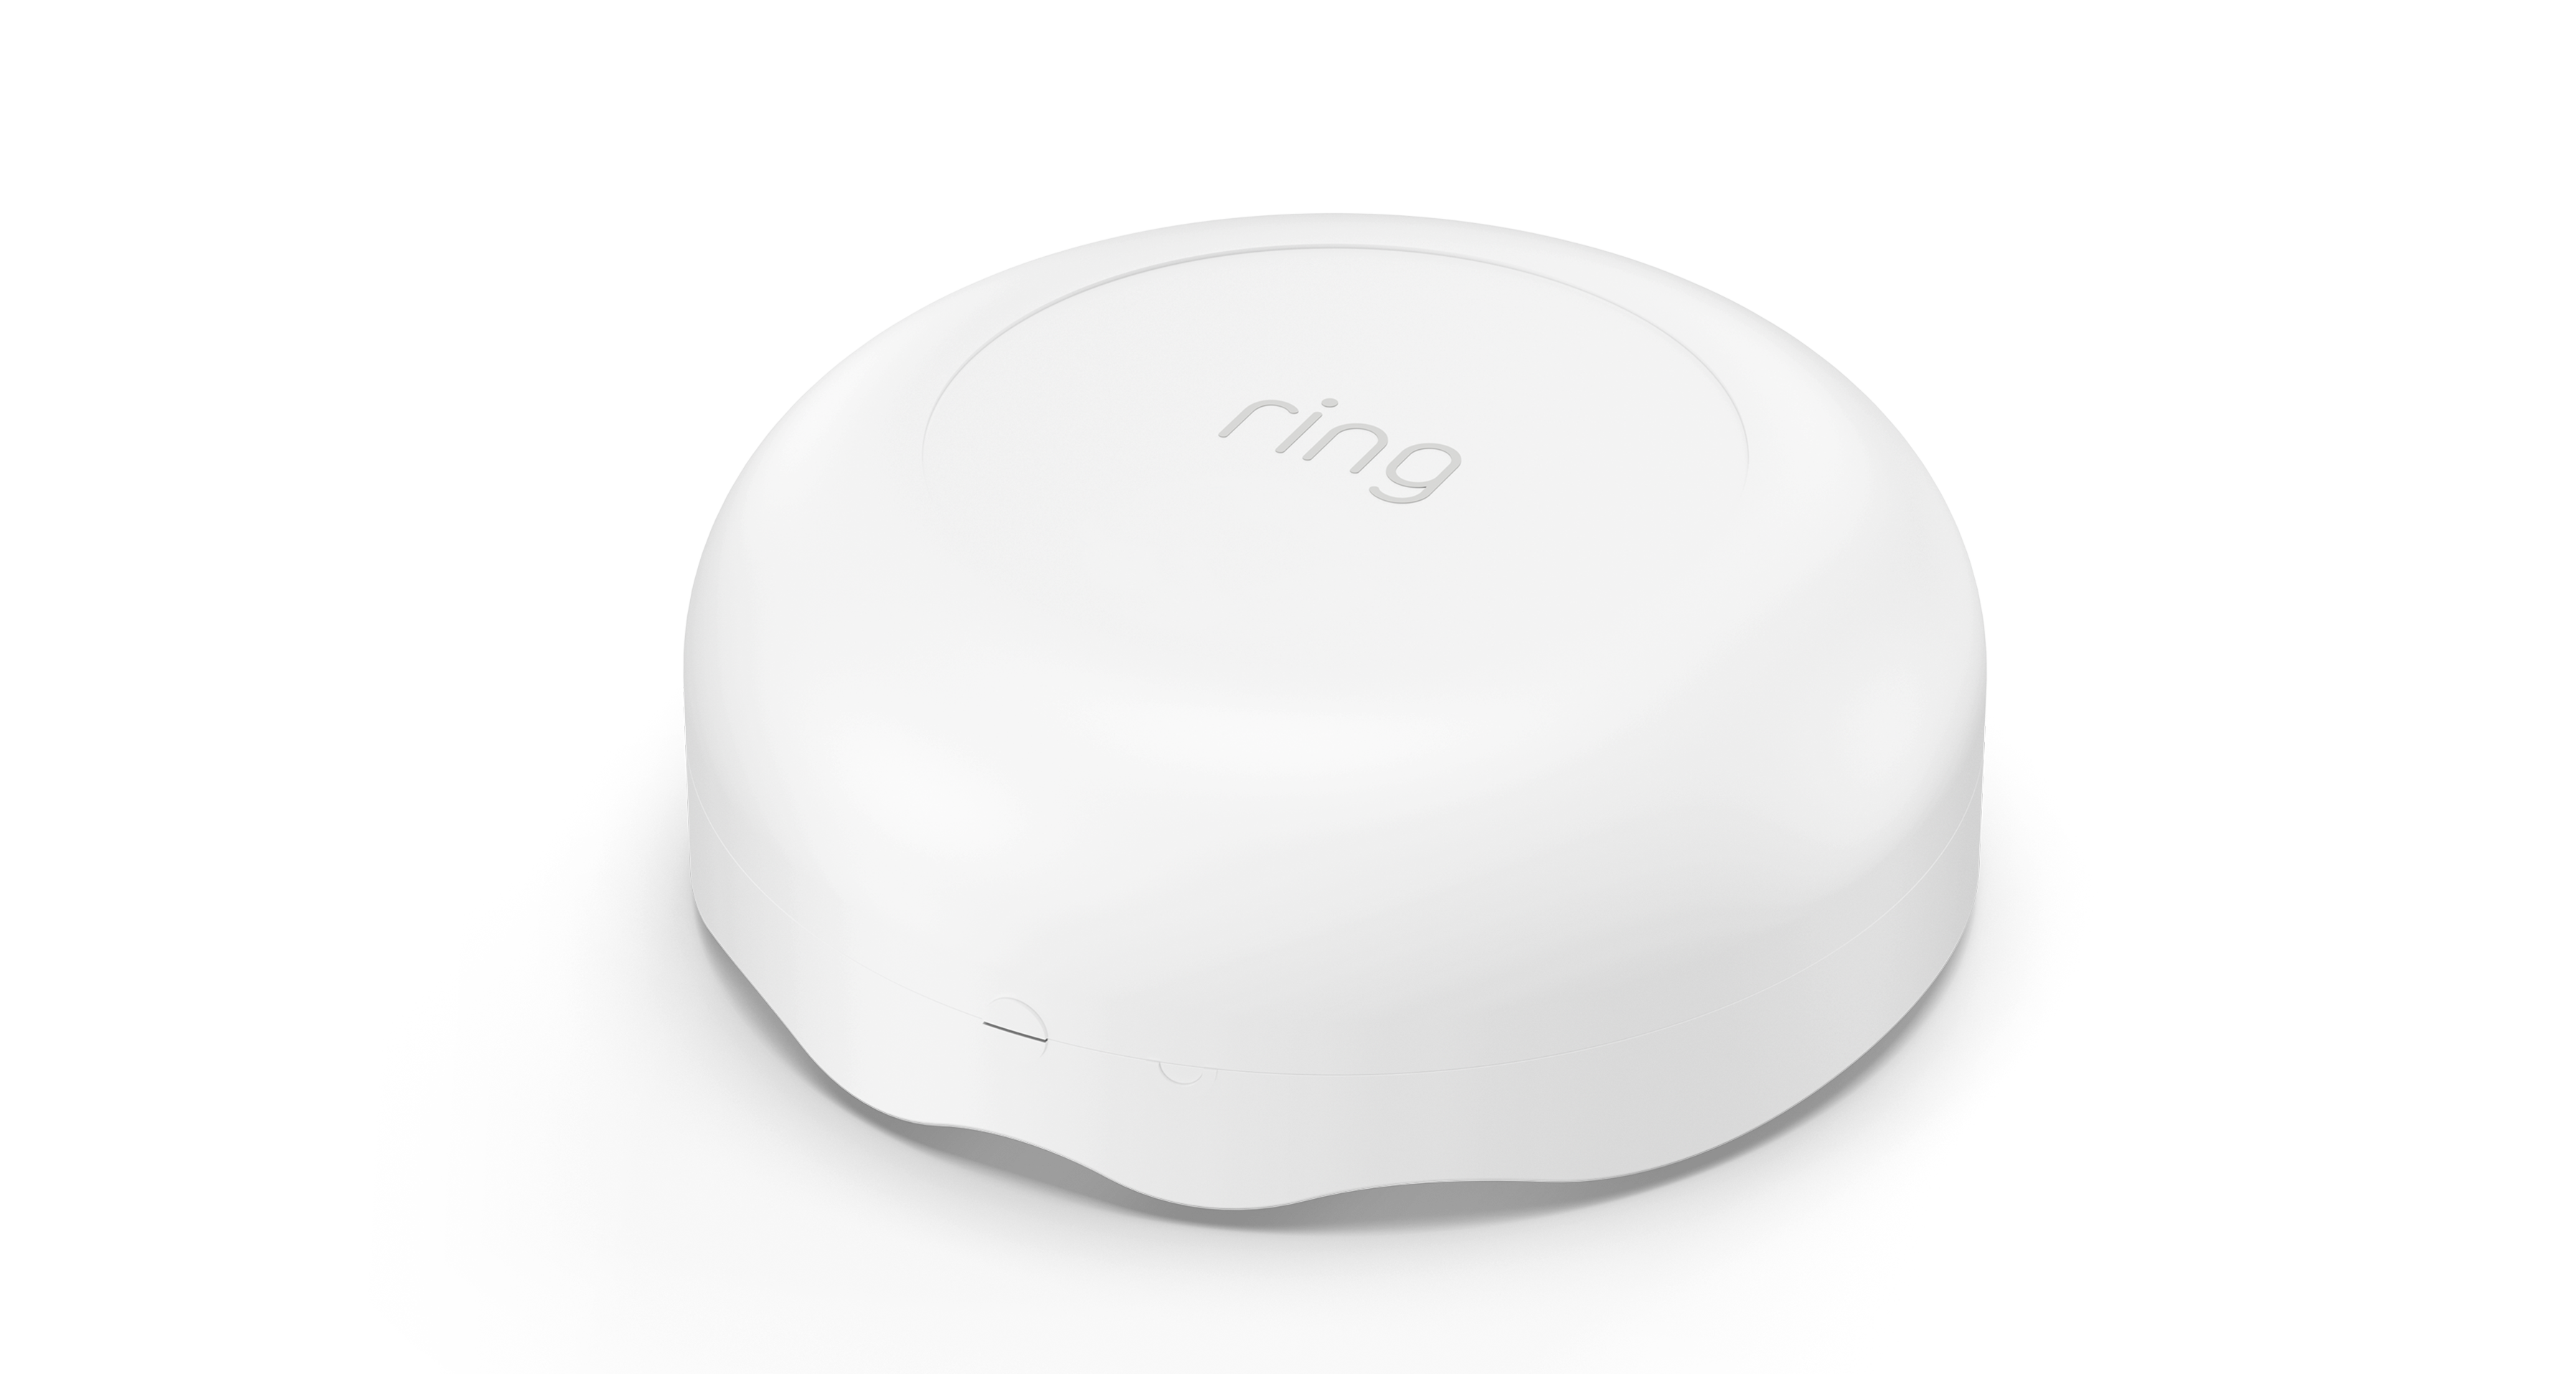 Ring Announces New Alarm Sensors Smart Locks And Alexa